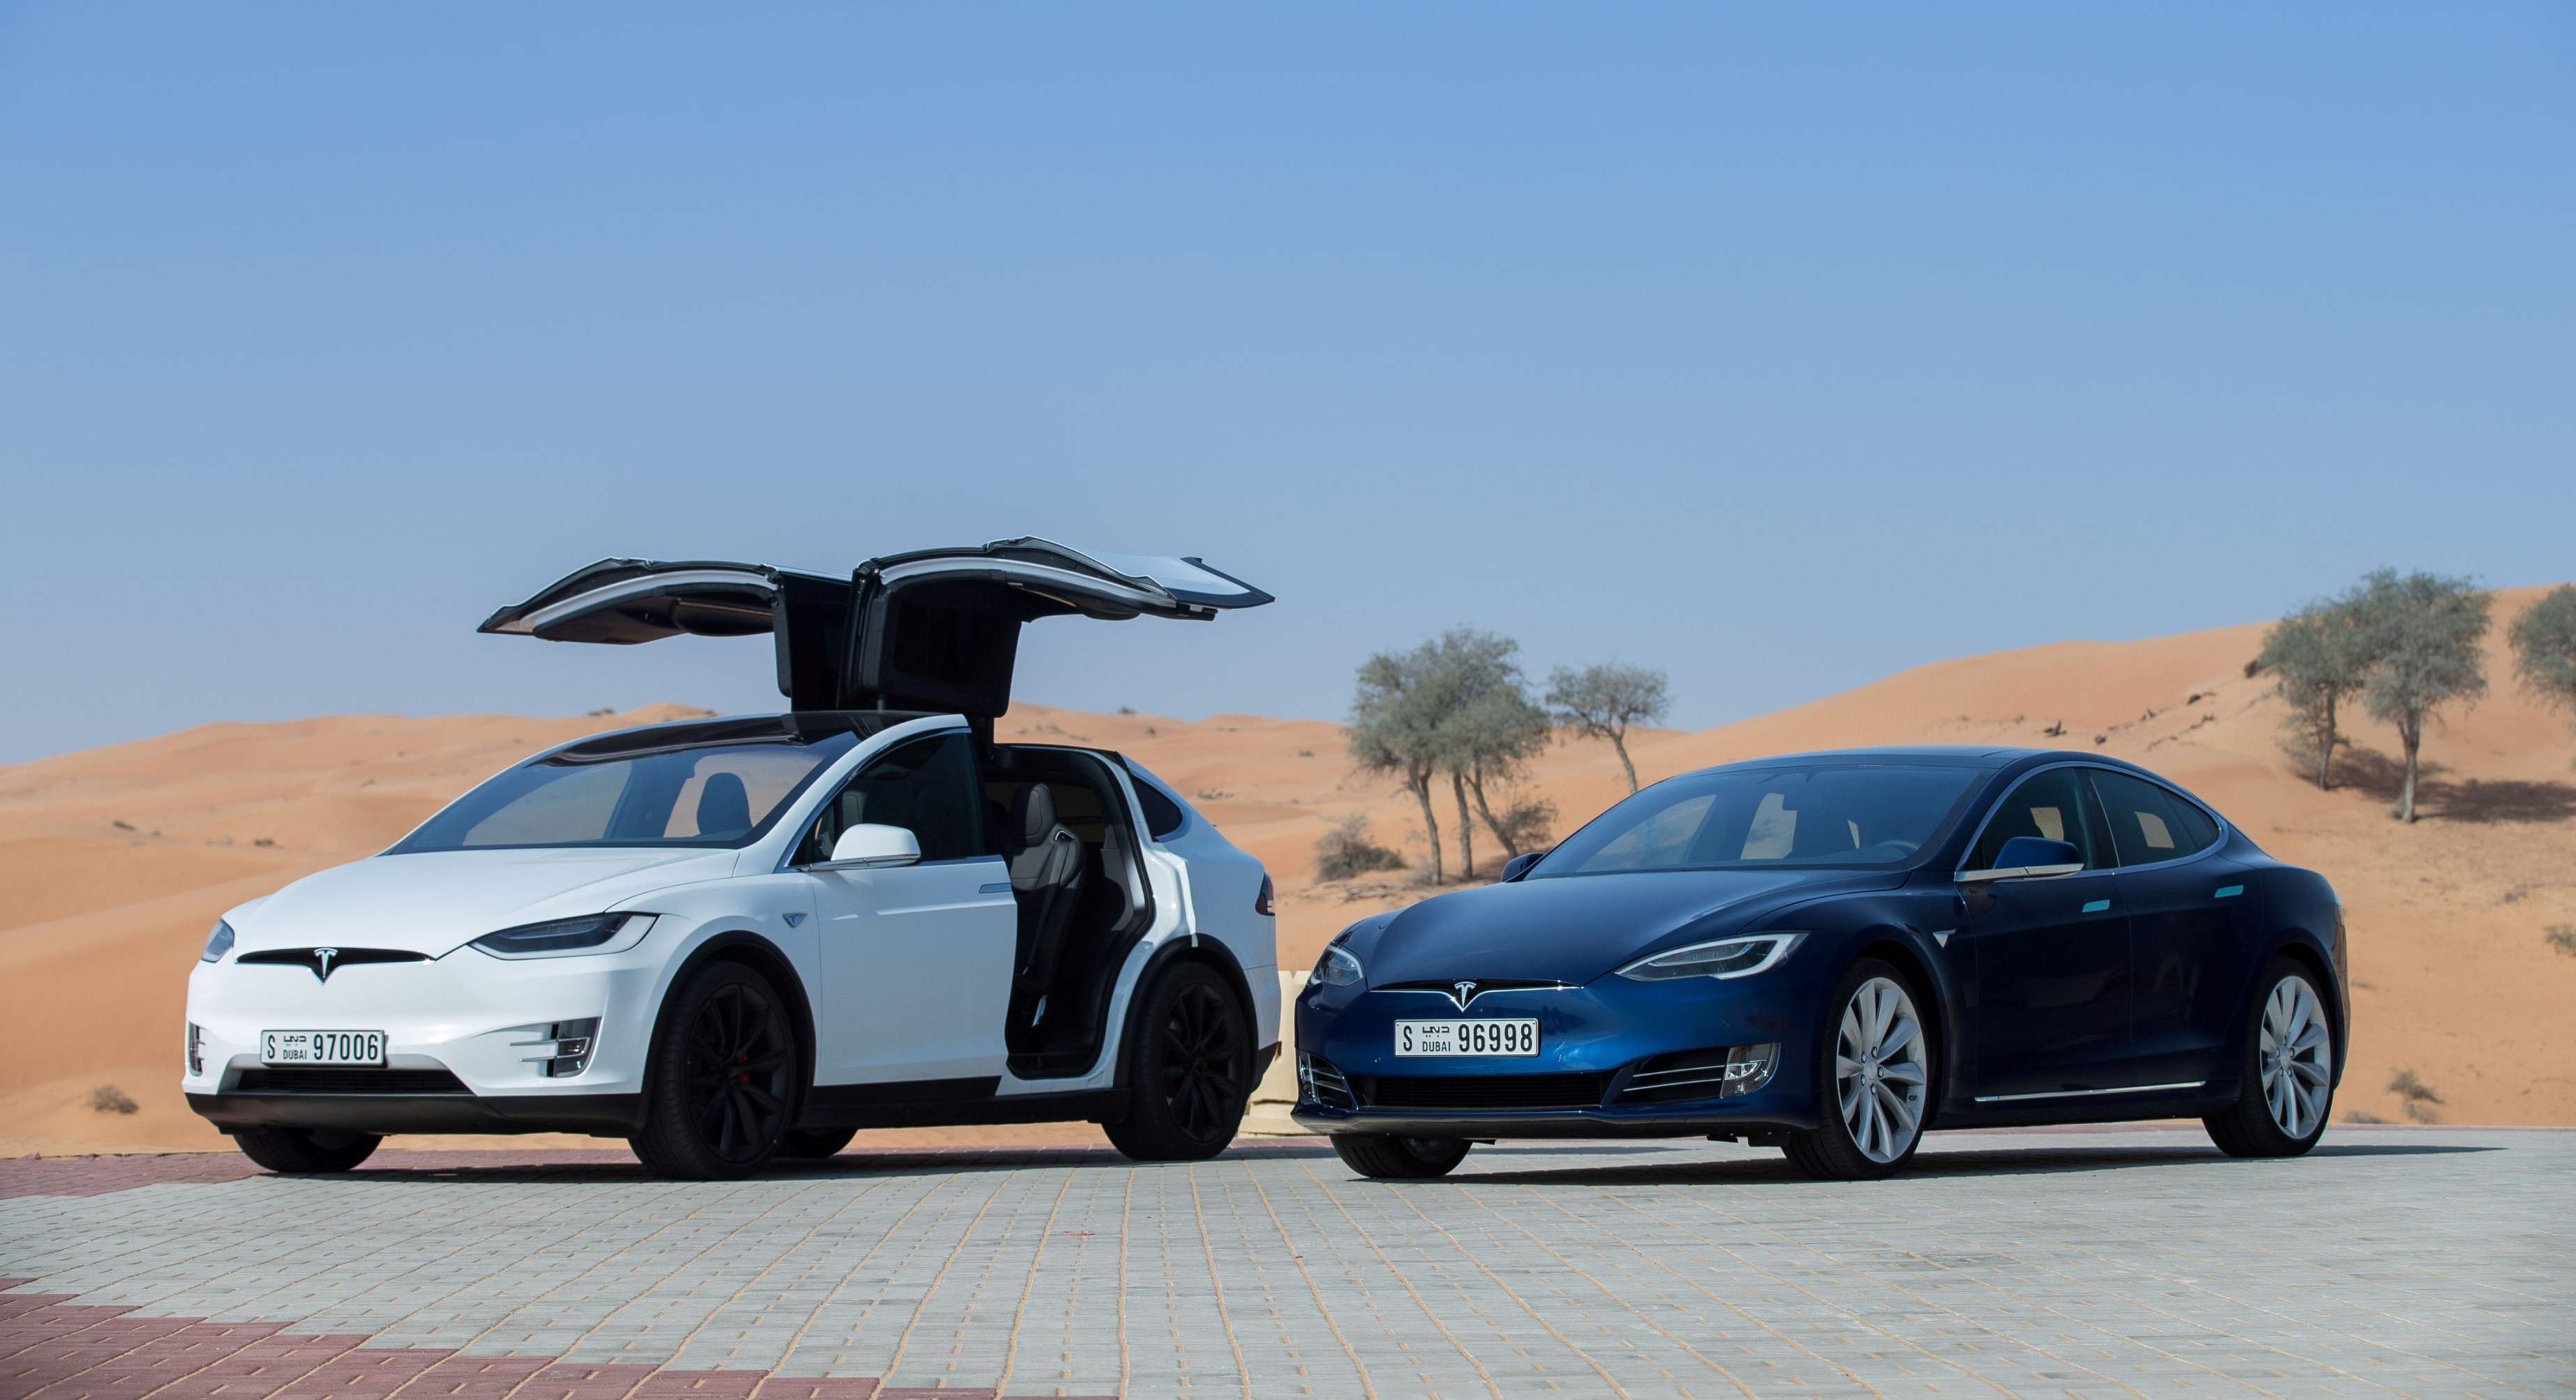 Tesla Comes to the UAE with Model S and Model X